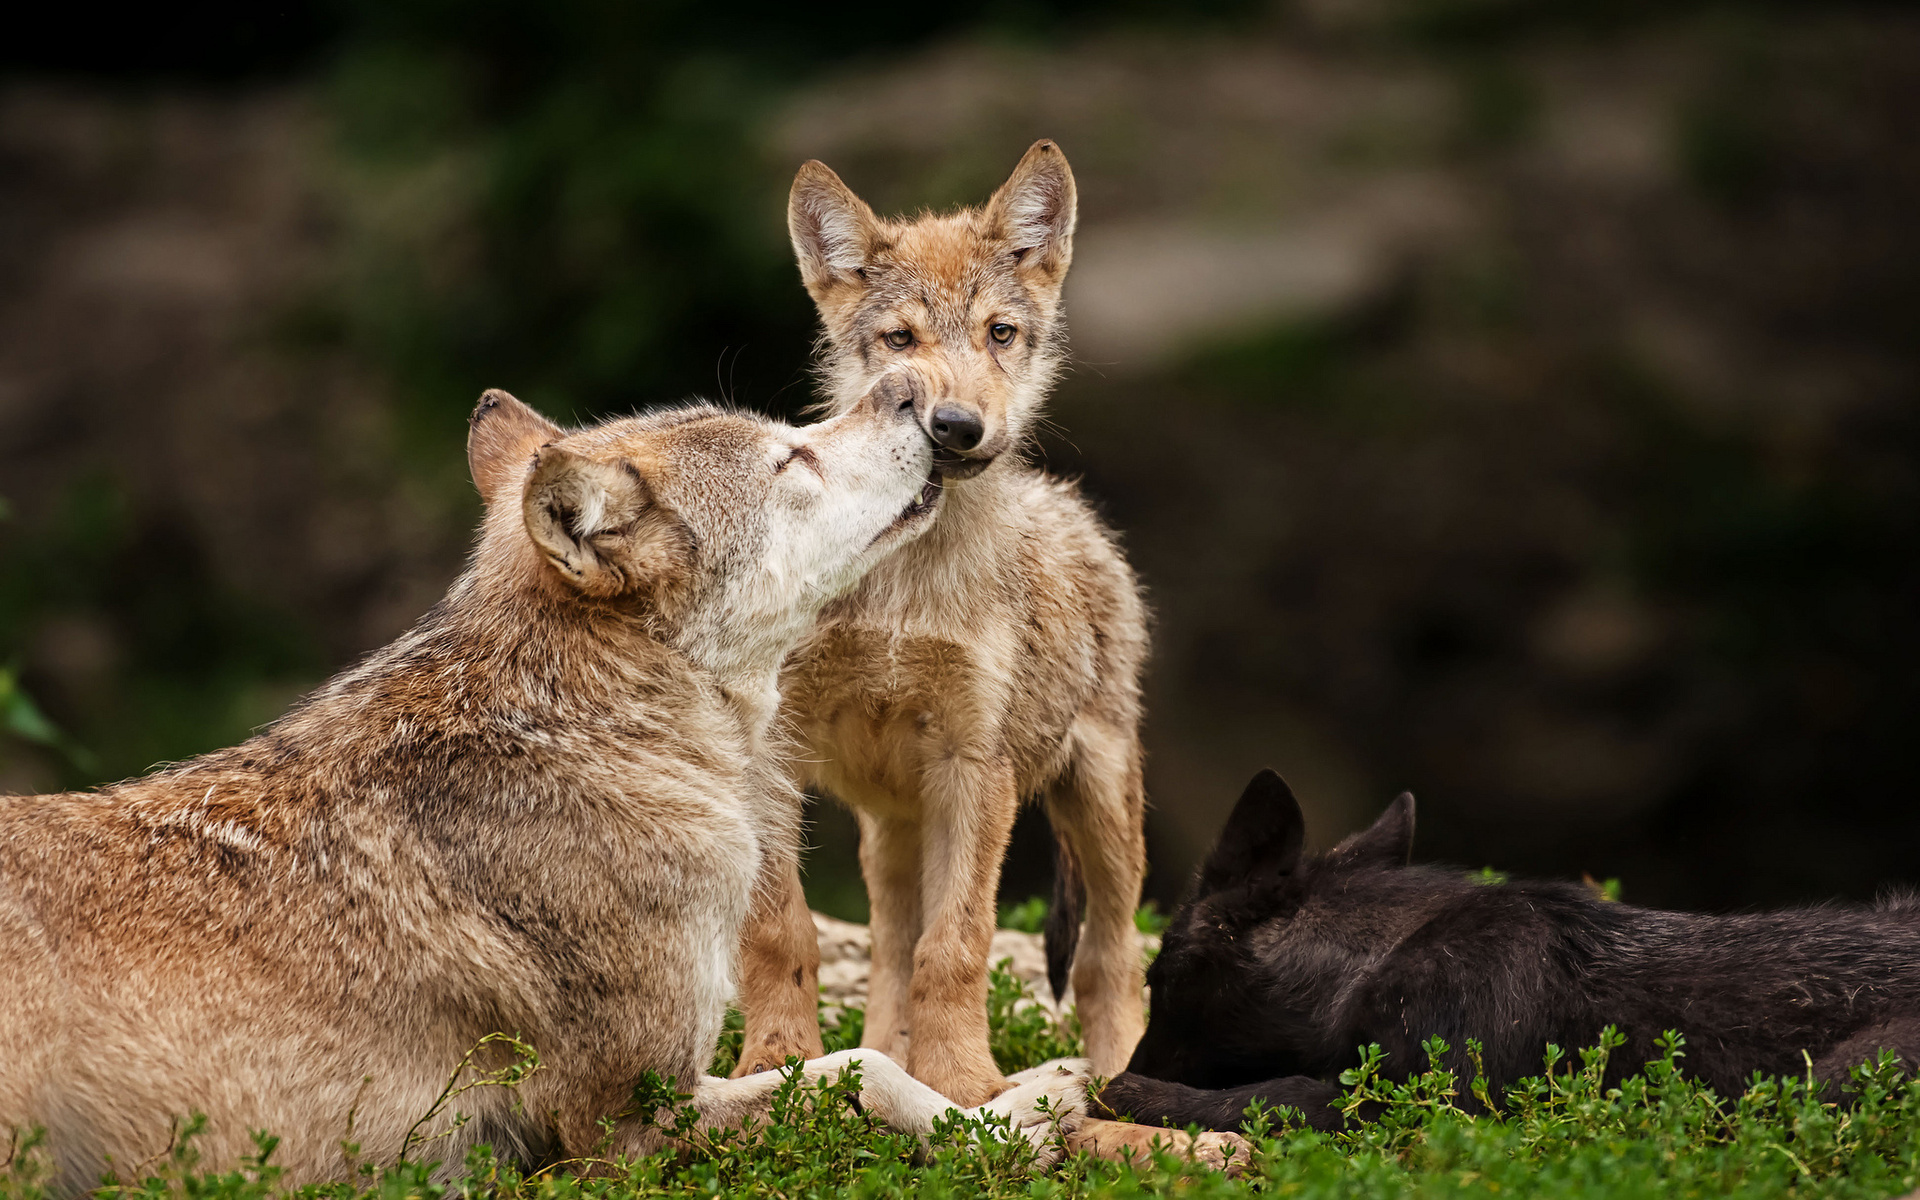 Cute Babies Wallpapers Download Free Animals Wolf Wolves Wildlife Predators Babies Cubs